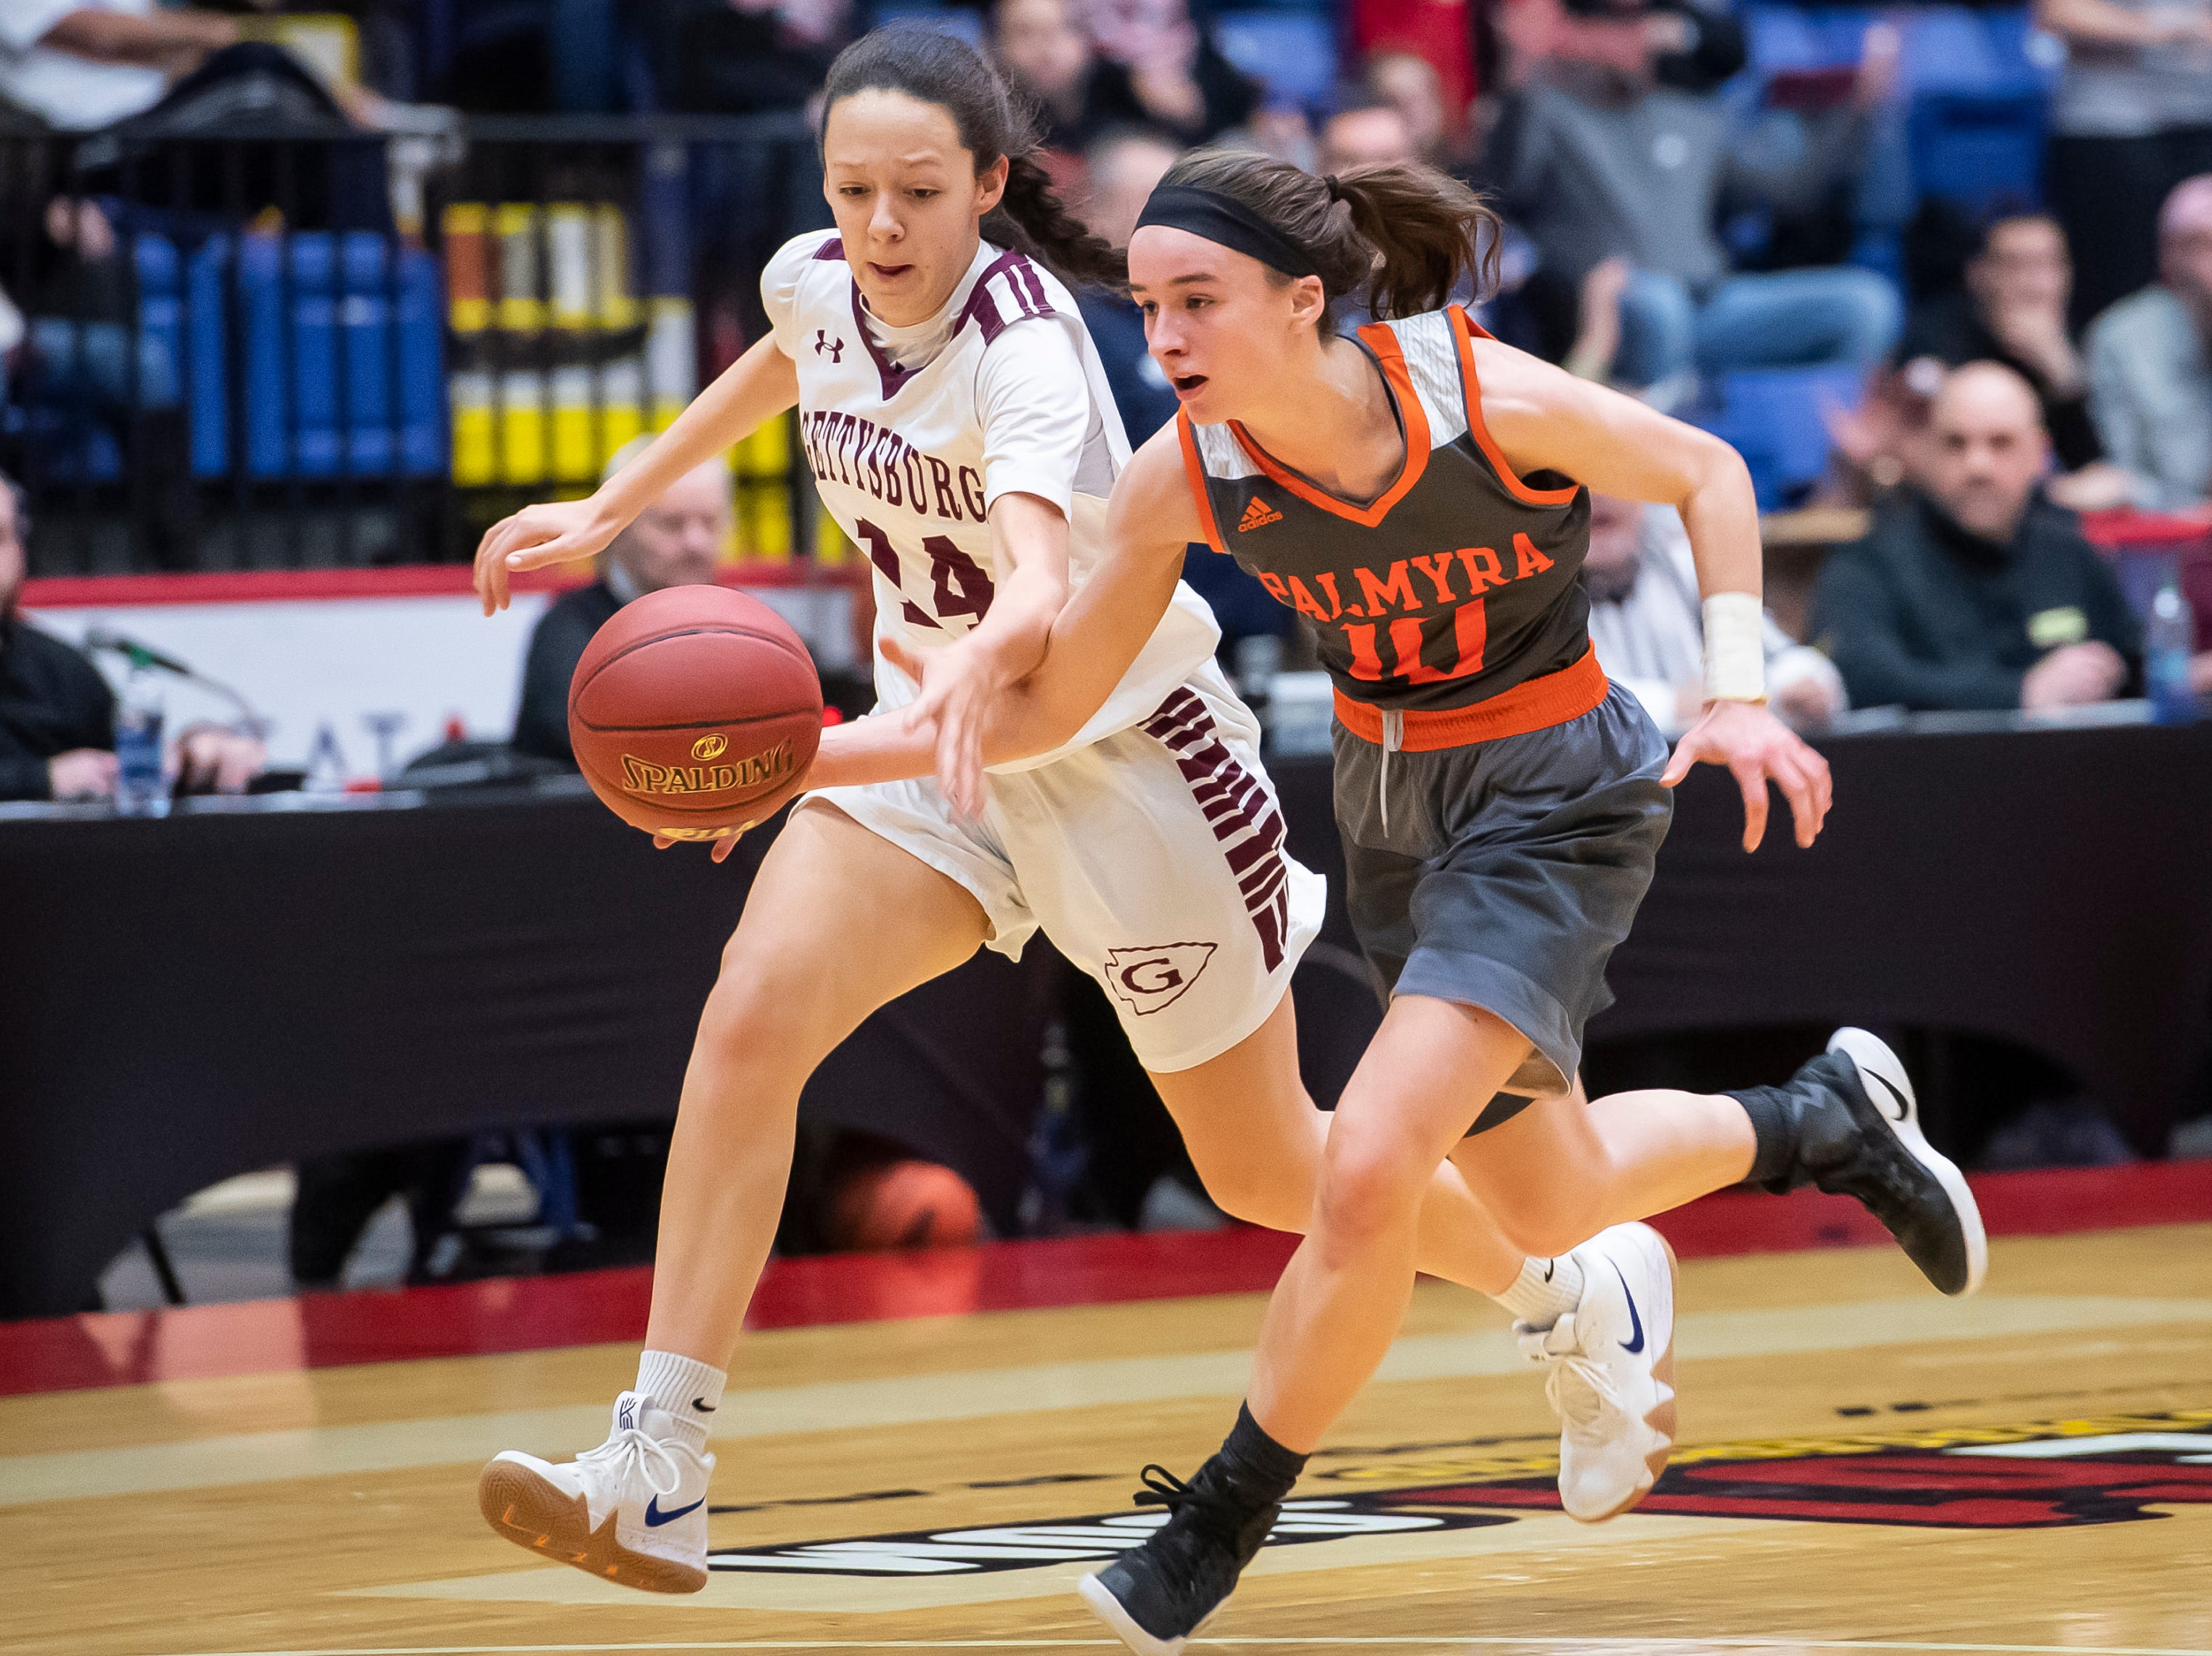 Palmyra's Amelia Baldo chases down the ball with Gettysburg's Madison Proctor during the District 3 5A girls championship game at Santander Arena in Reading, Pa., Friday, March 1, 2019.